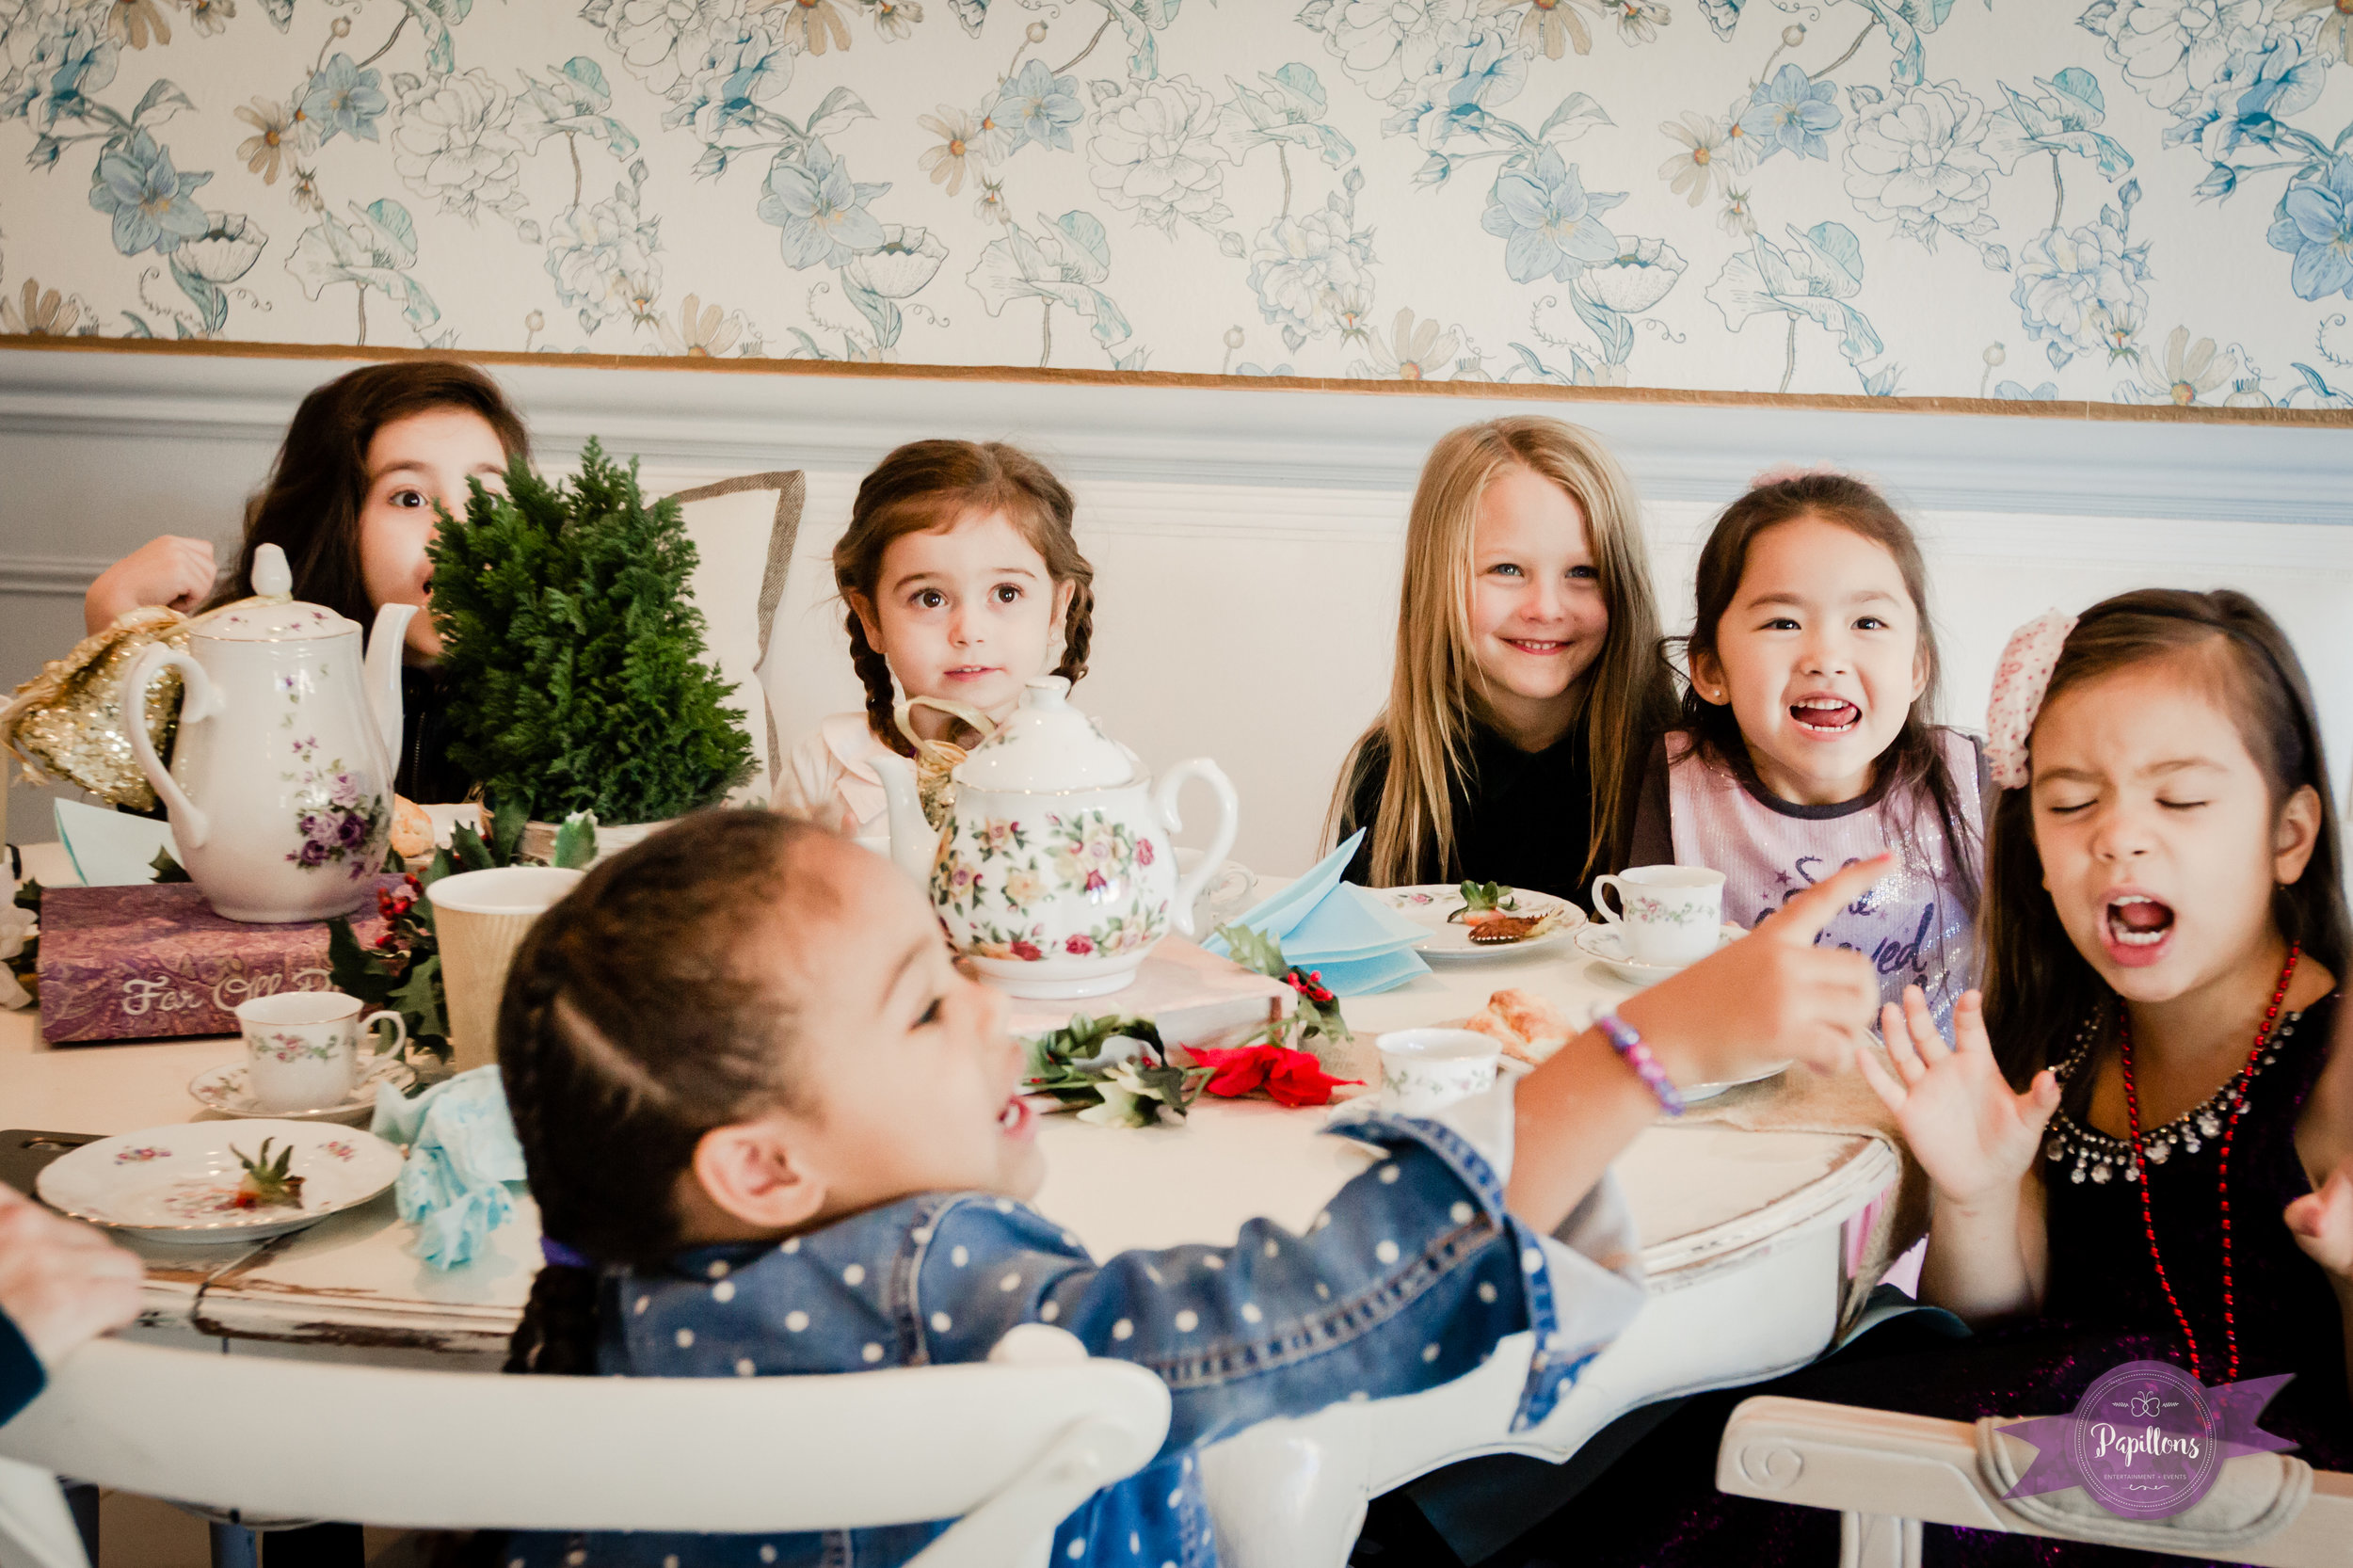 kids tea party french confection co burbank (1 of 1).jpg